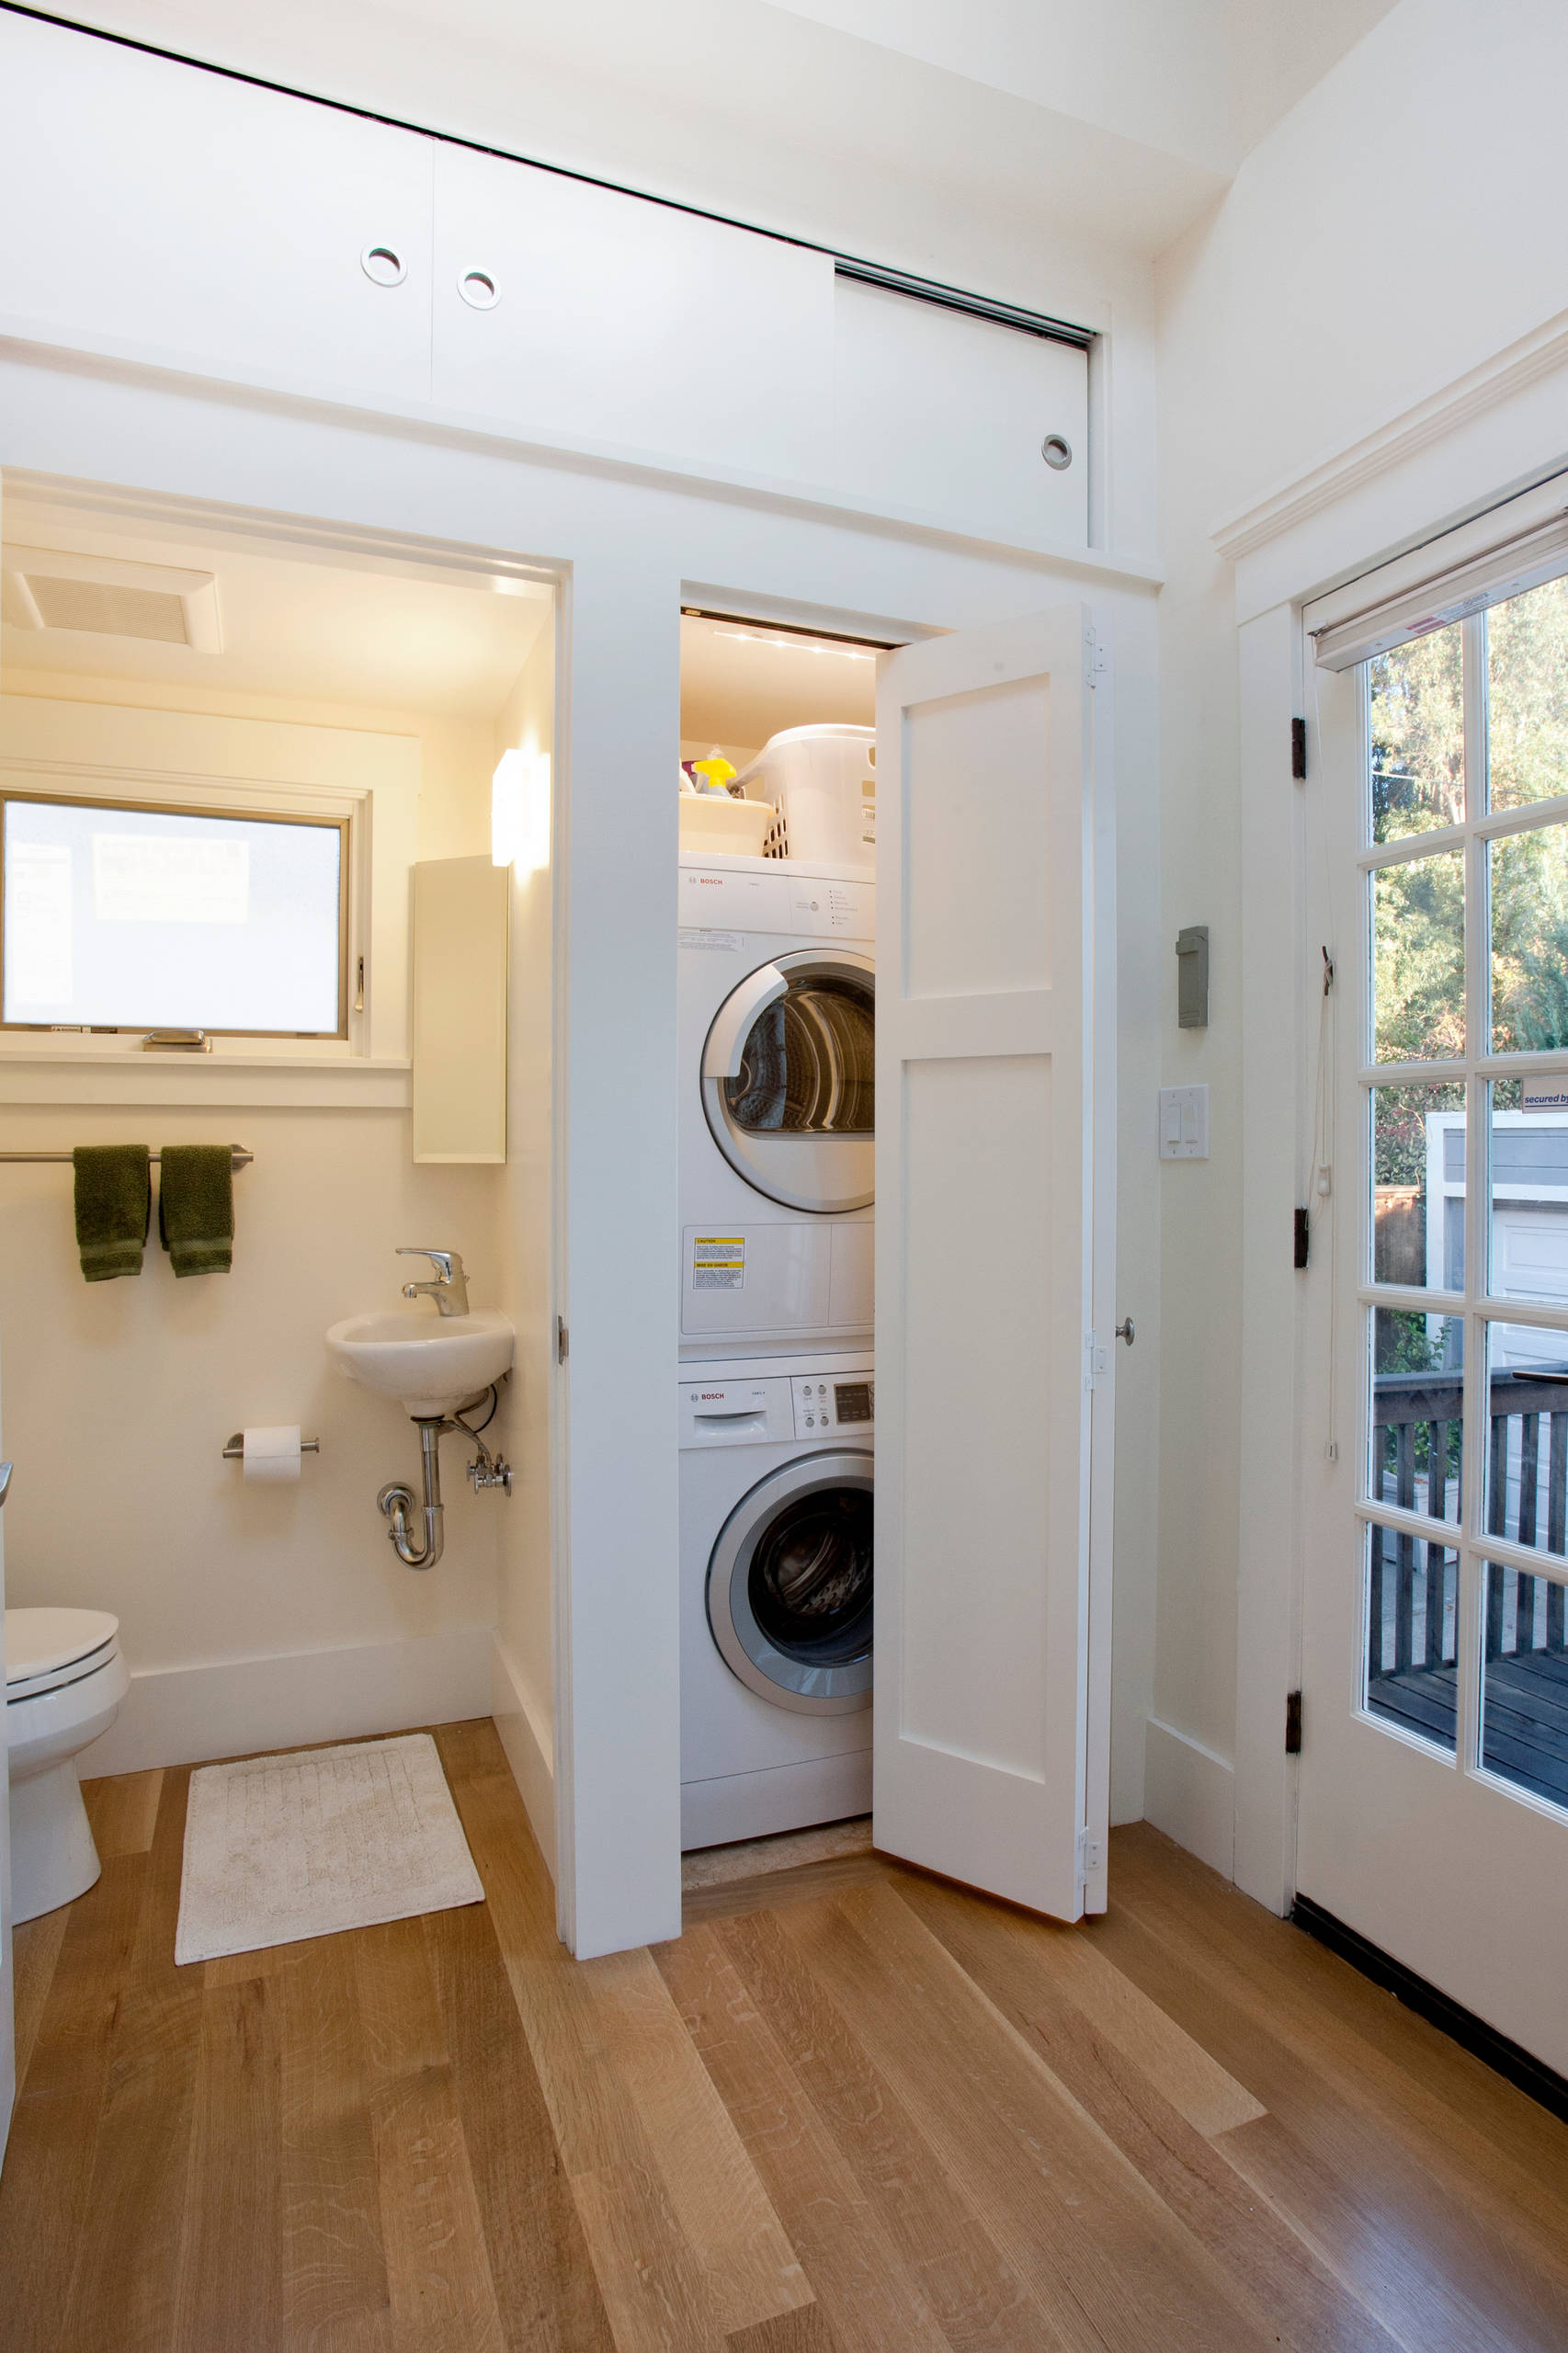 Washer and dryer in bathroom Craftsman Laundry Room white cabinets and white walls laundry room appliances